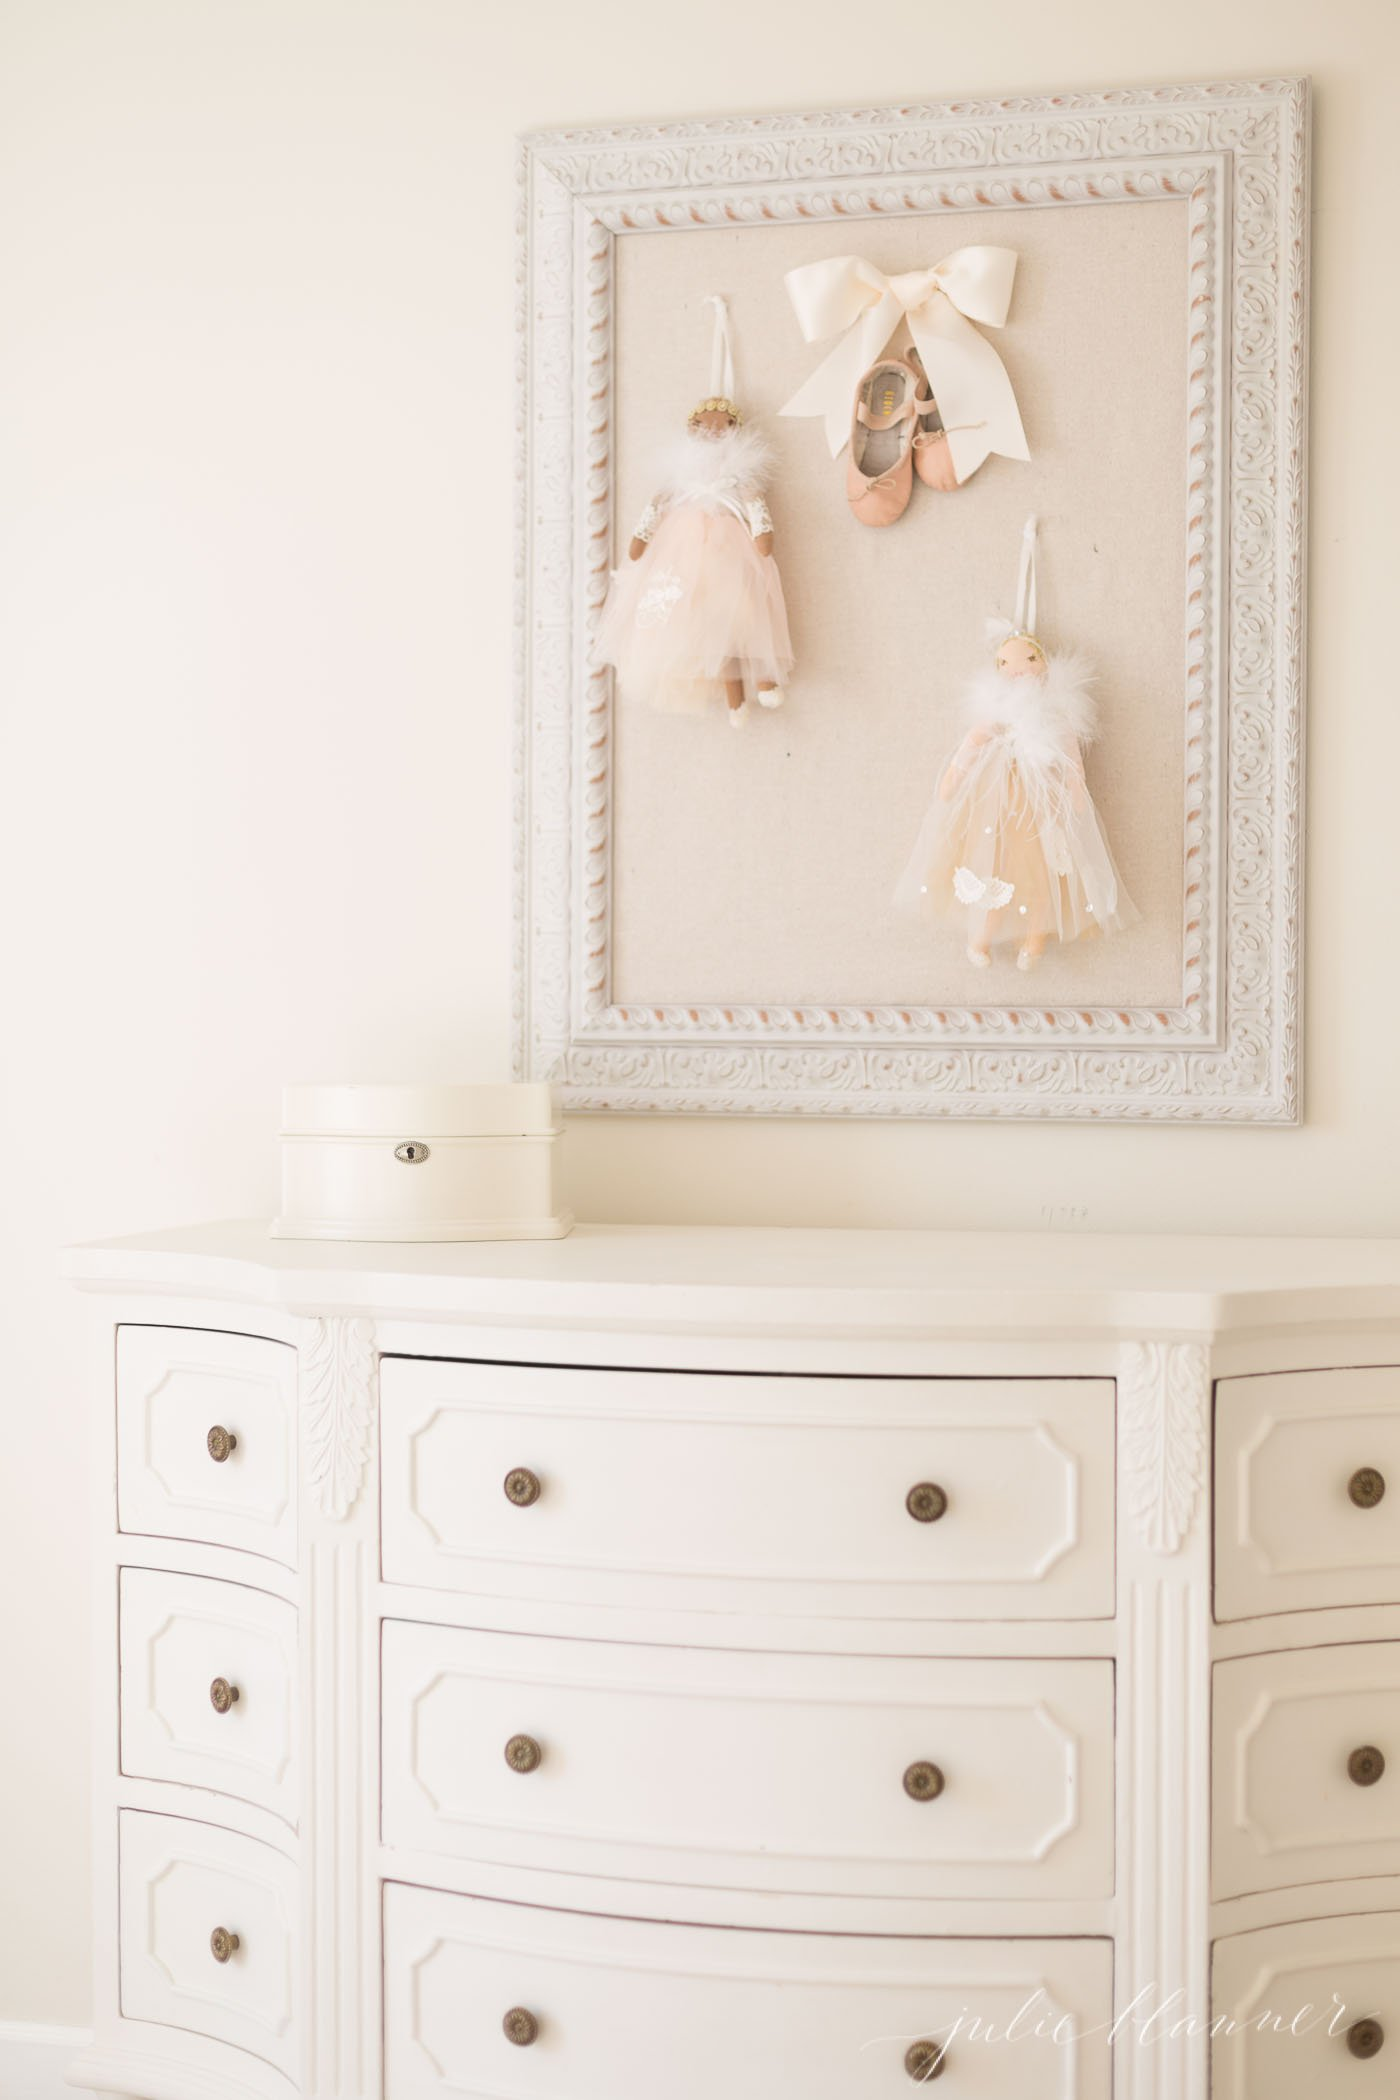 A little girl's bedroom scene with a white painted dresser and white pinboard with ballet details.